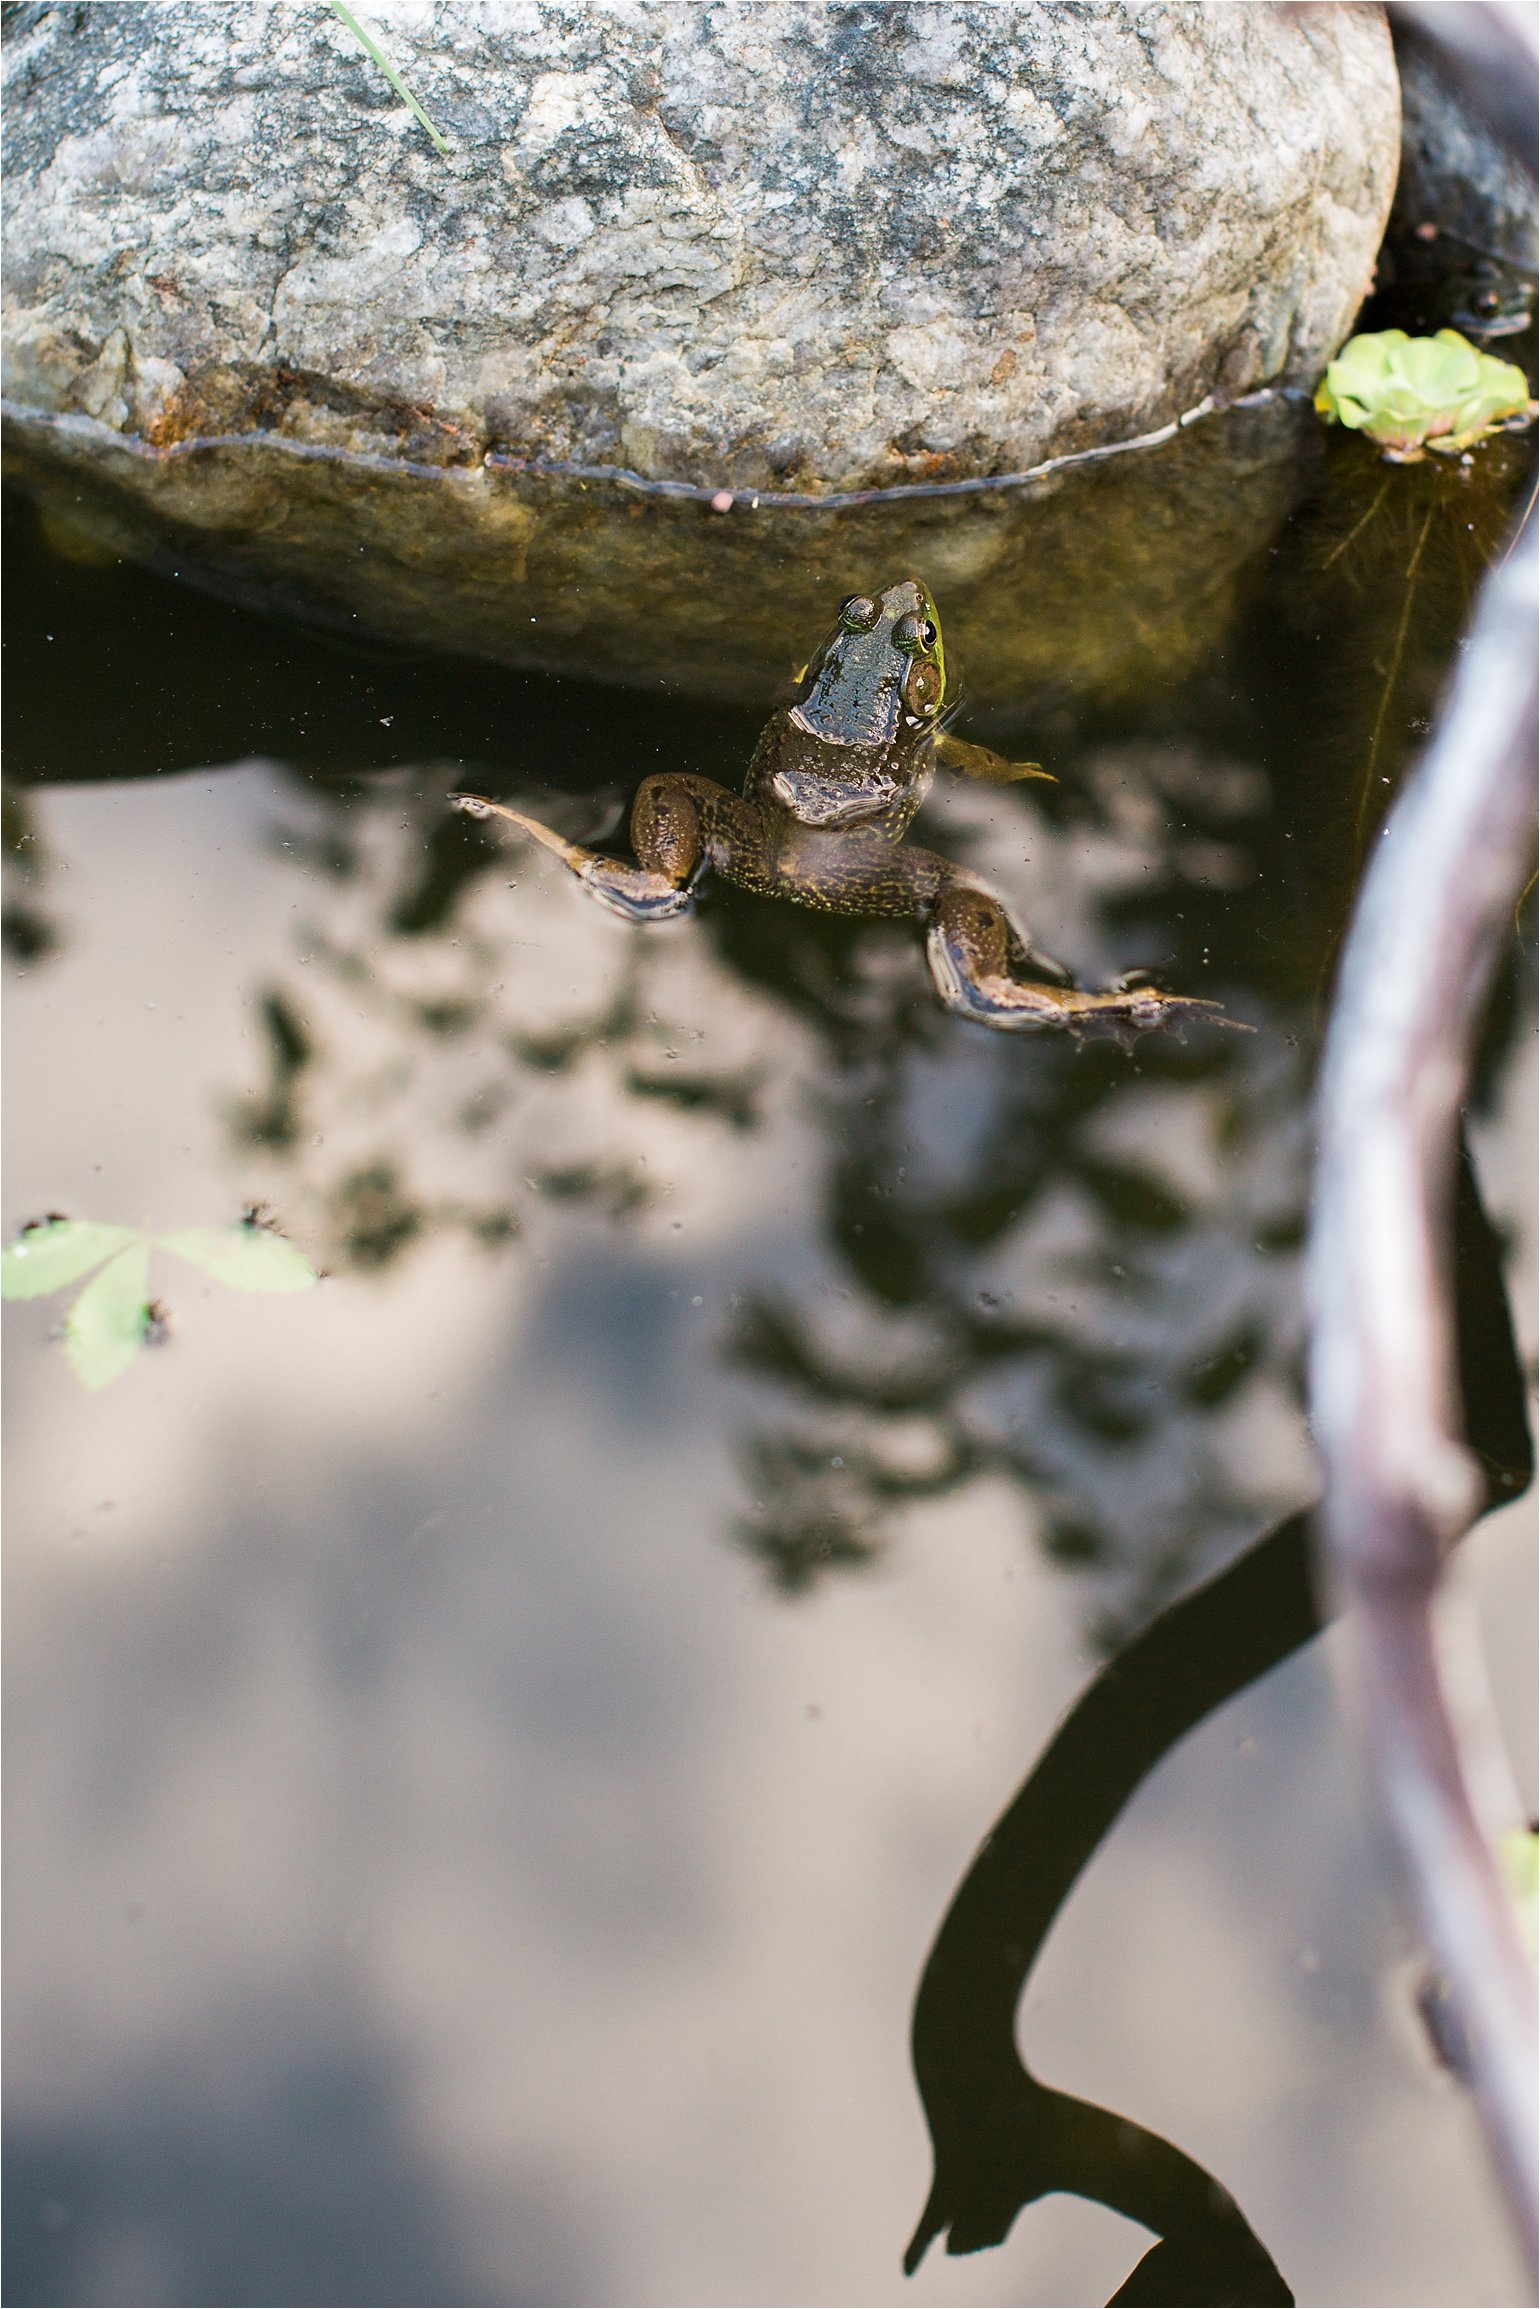 Frog in Pond © 2015 Maundy Mitchell